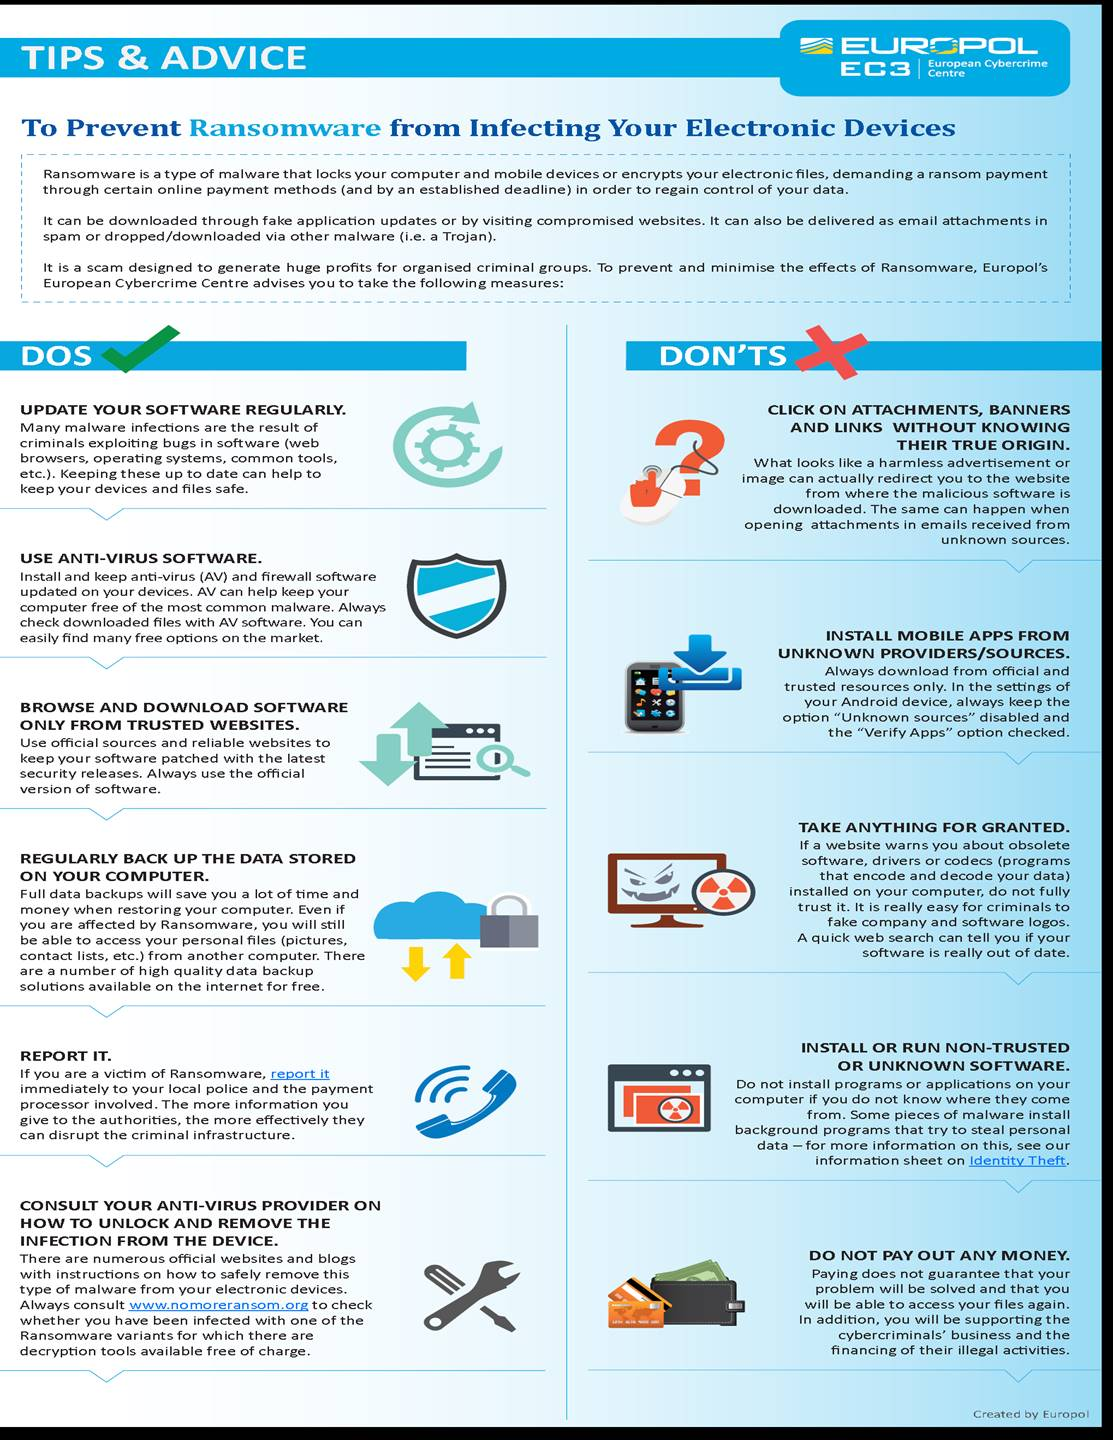 Ransomware Dos and Don'ts - Evans on Marketing